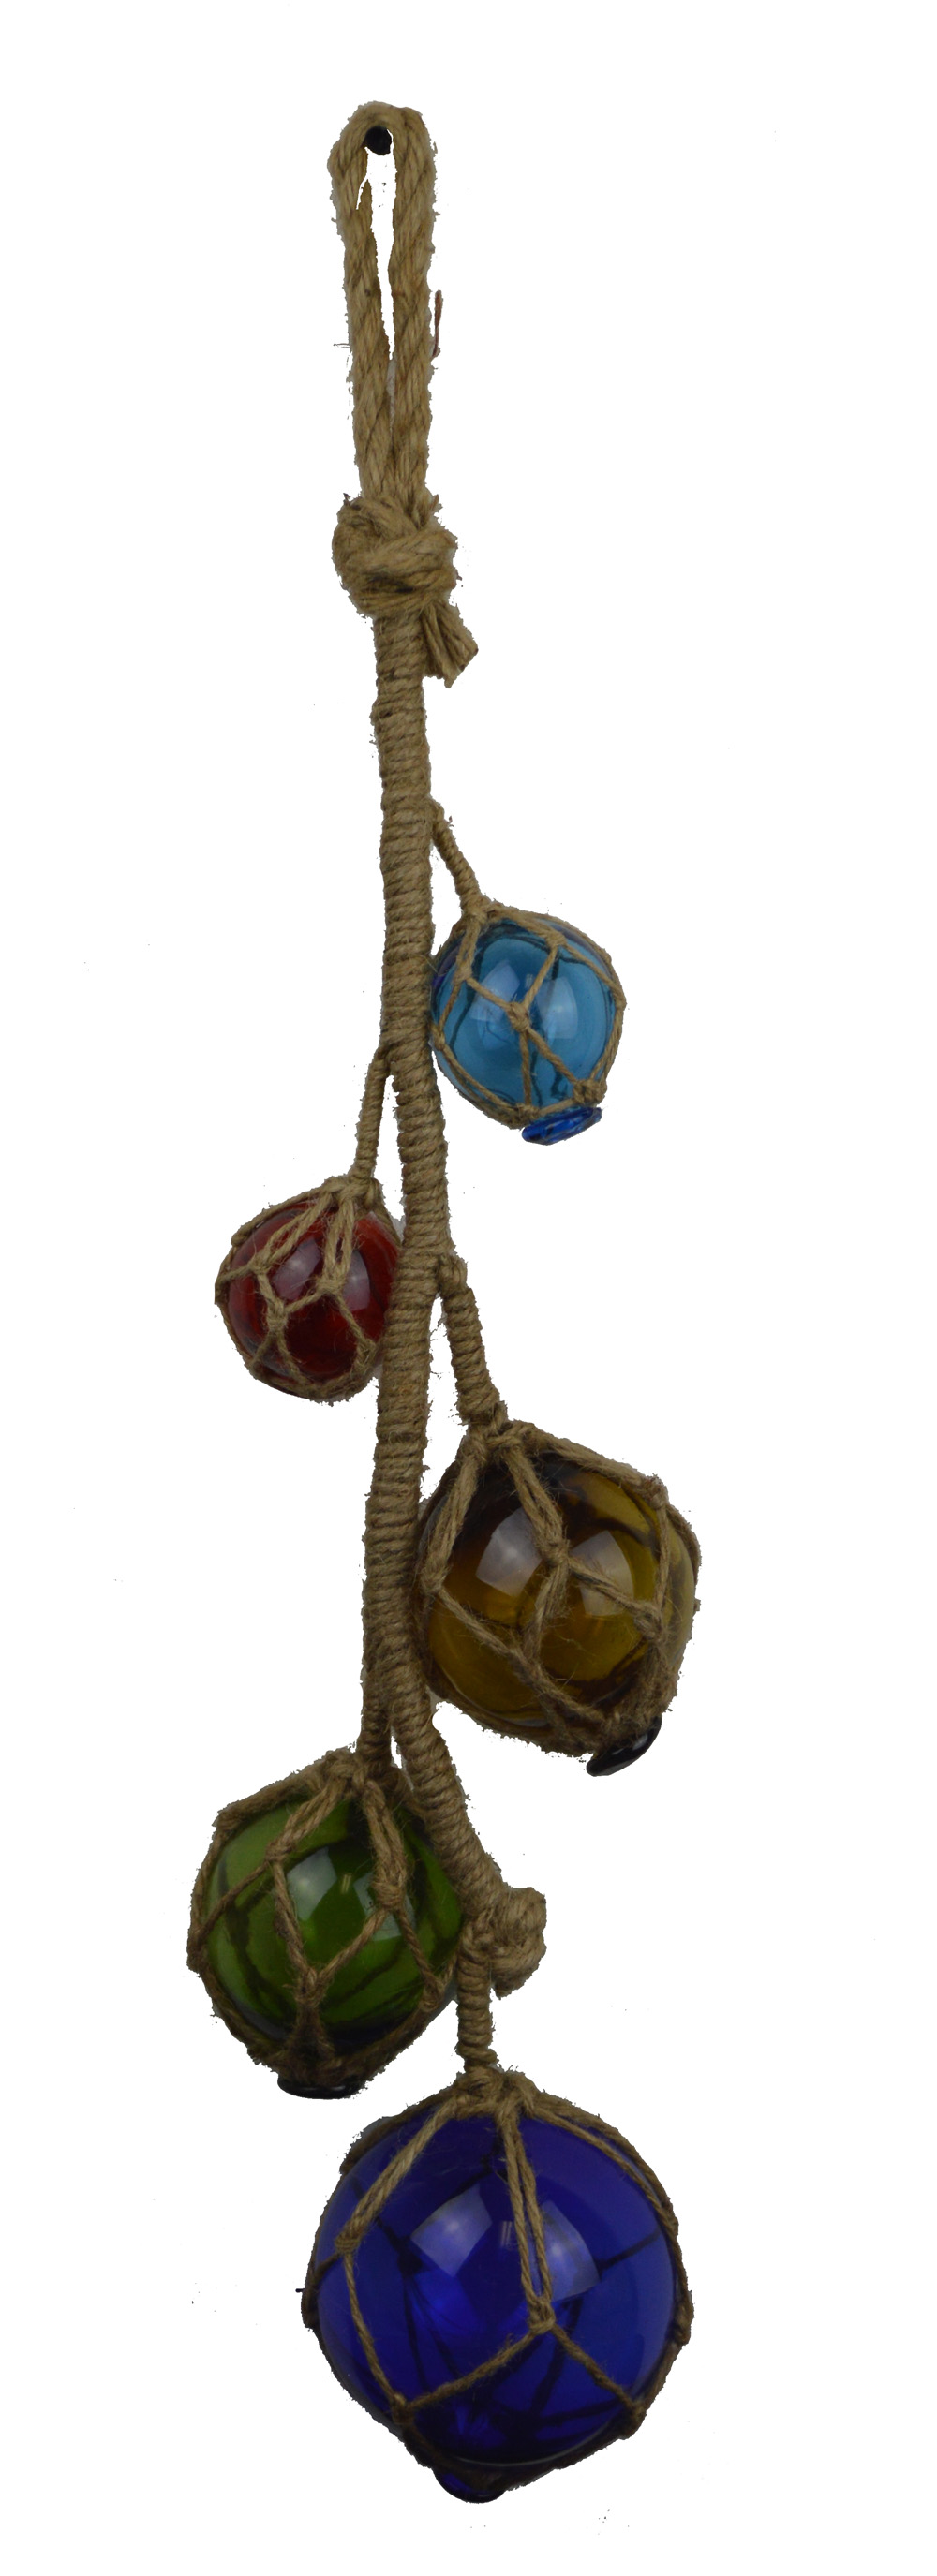 "27""L Five Glass Floats on Rope - Dark Blue, Red, Orange, Green, Light Blue"